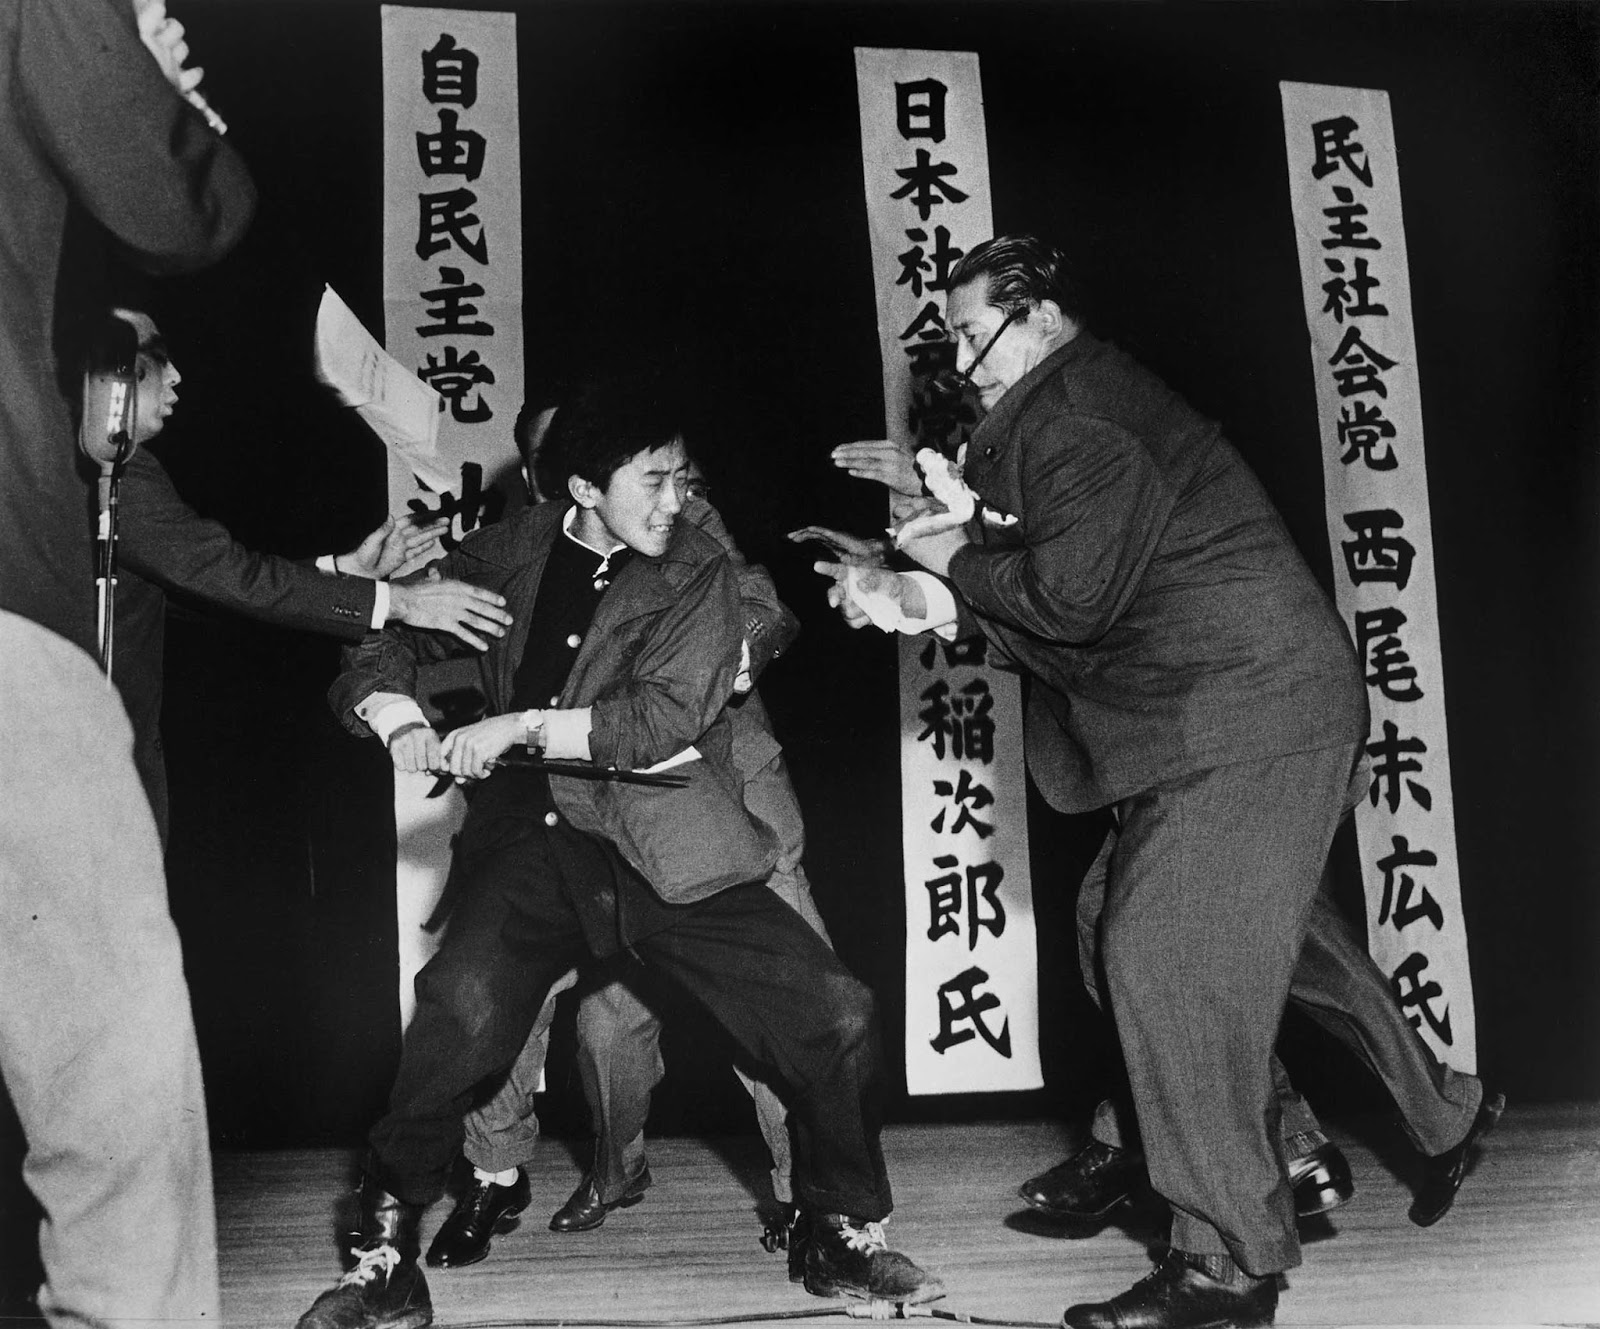 On 12 October 1960, the 17-year-old extreme right-wing student Otoya Yamaguchi kills the socialist politician Inejiro Asanuma with a sword during a speech in Tokyo.